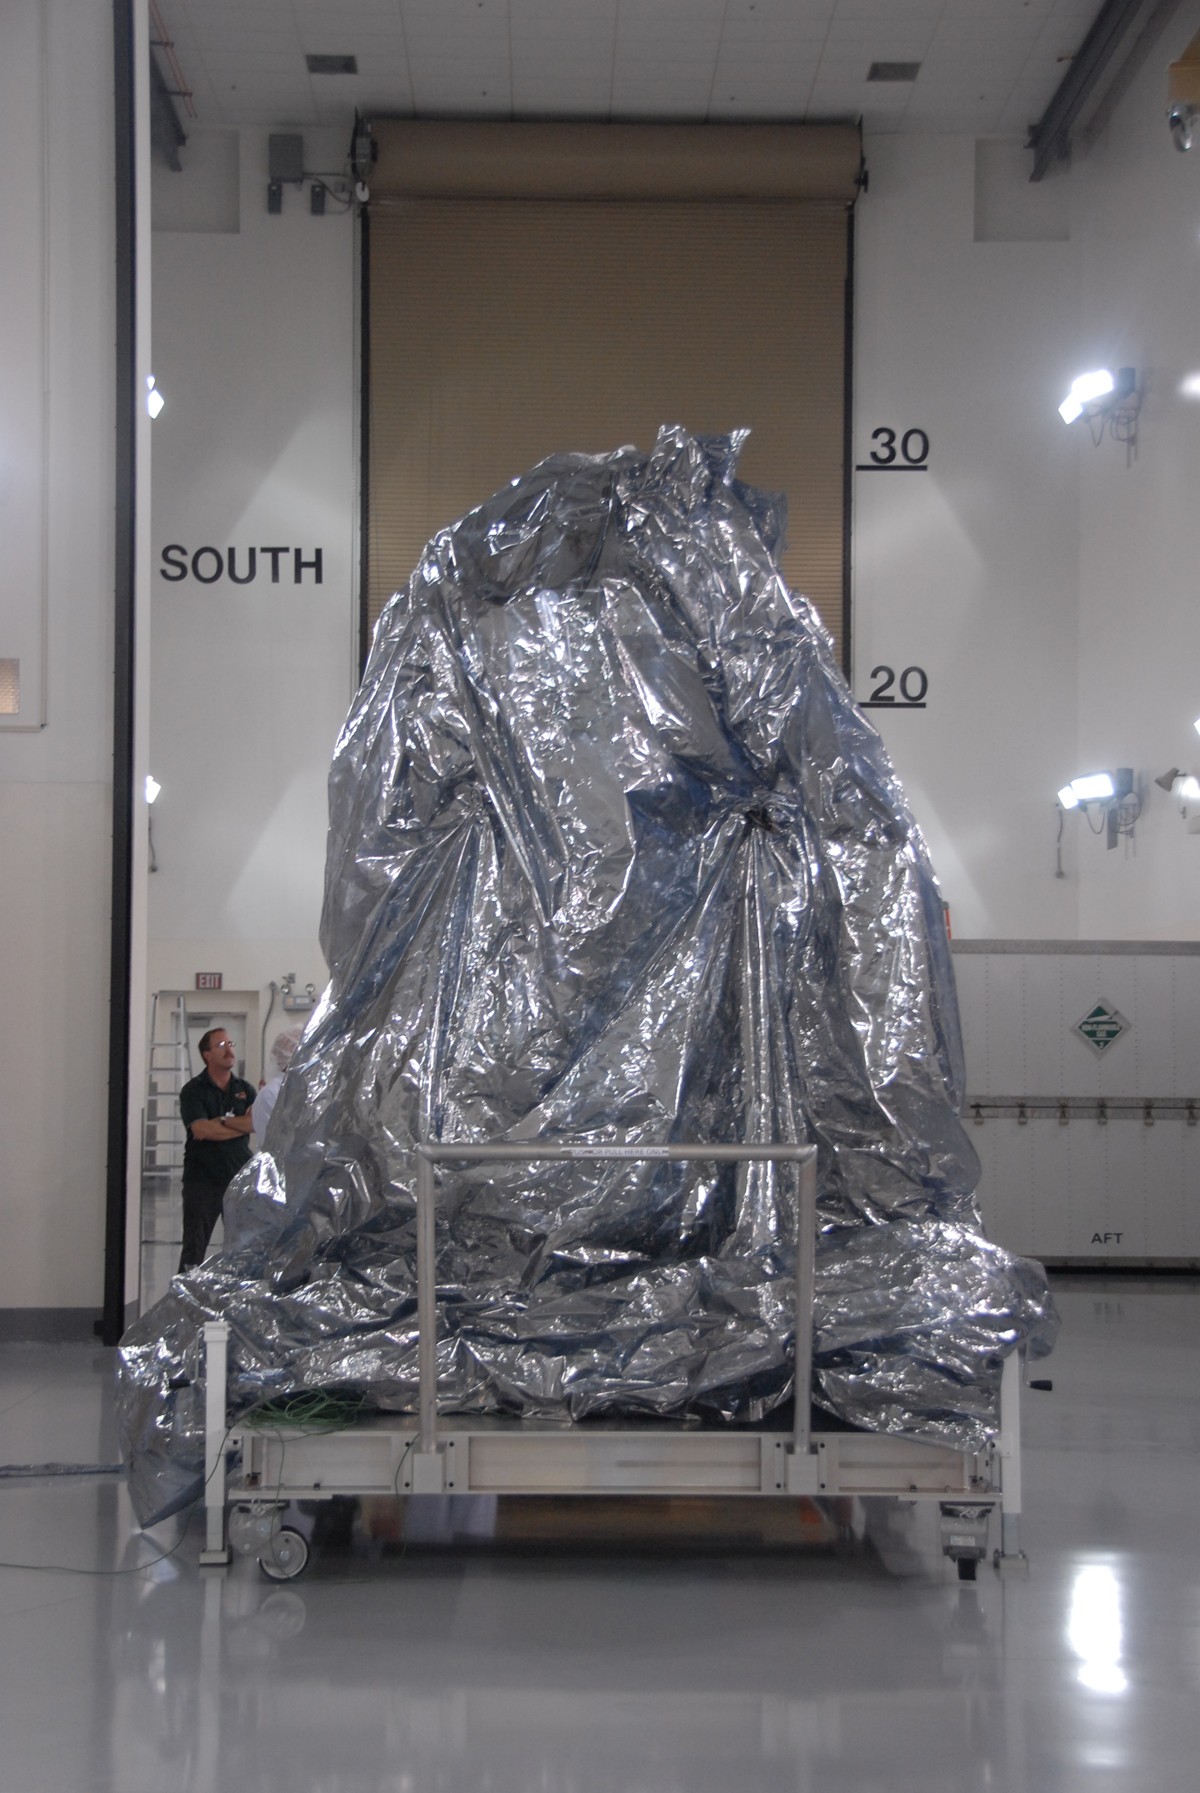 WISE spacecraft sits with a protective covering.